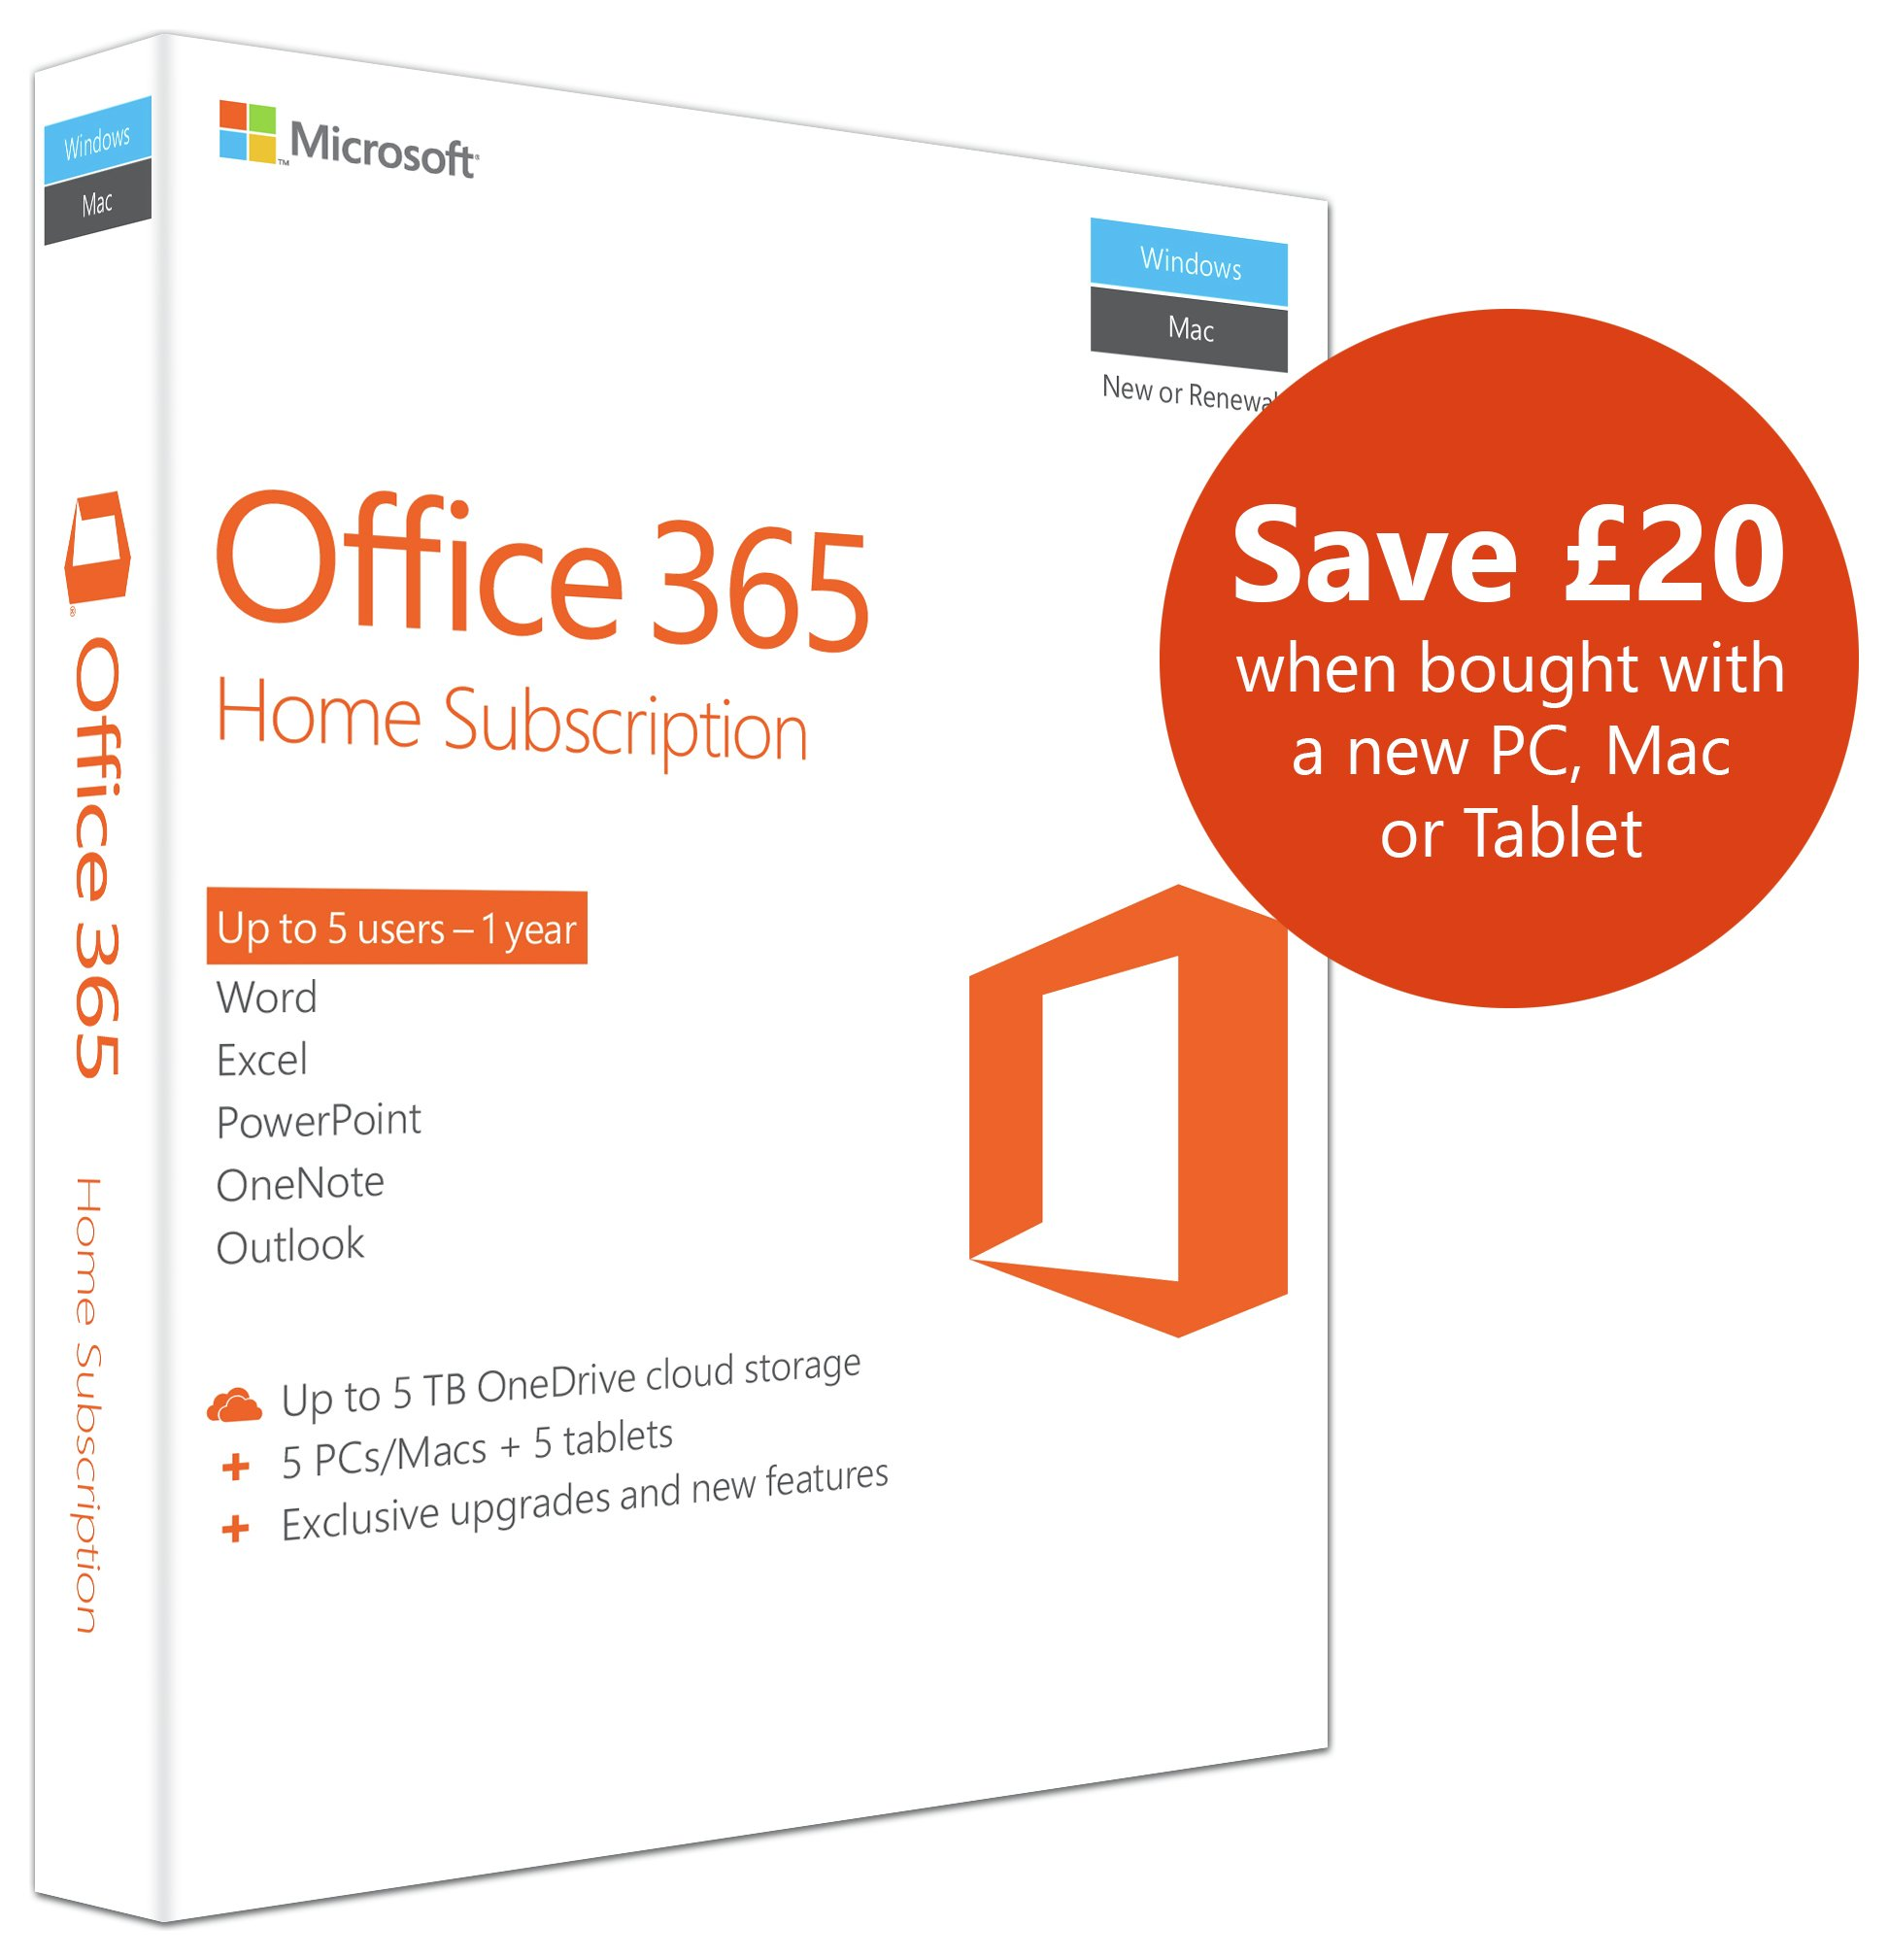 buy microsoft office 365 1 year 5 users home at argos.co.uk - your